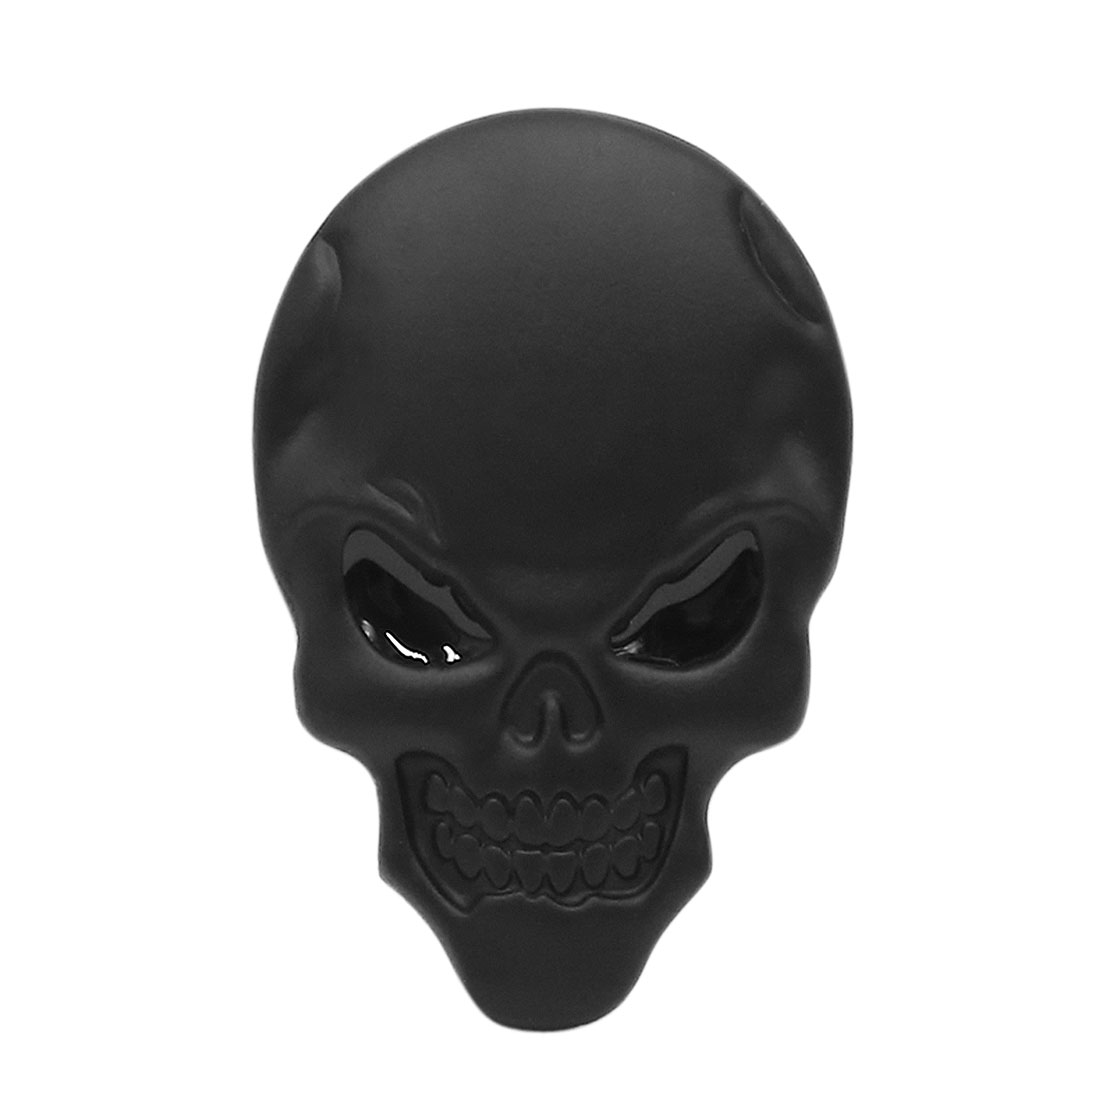 Black Metal Skull Bone Auto Car Body 3D Emblem Badge Self Adhesive Decor Sticker